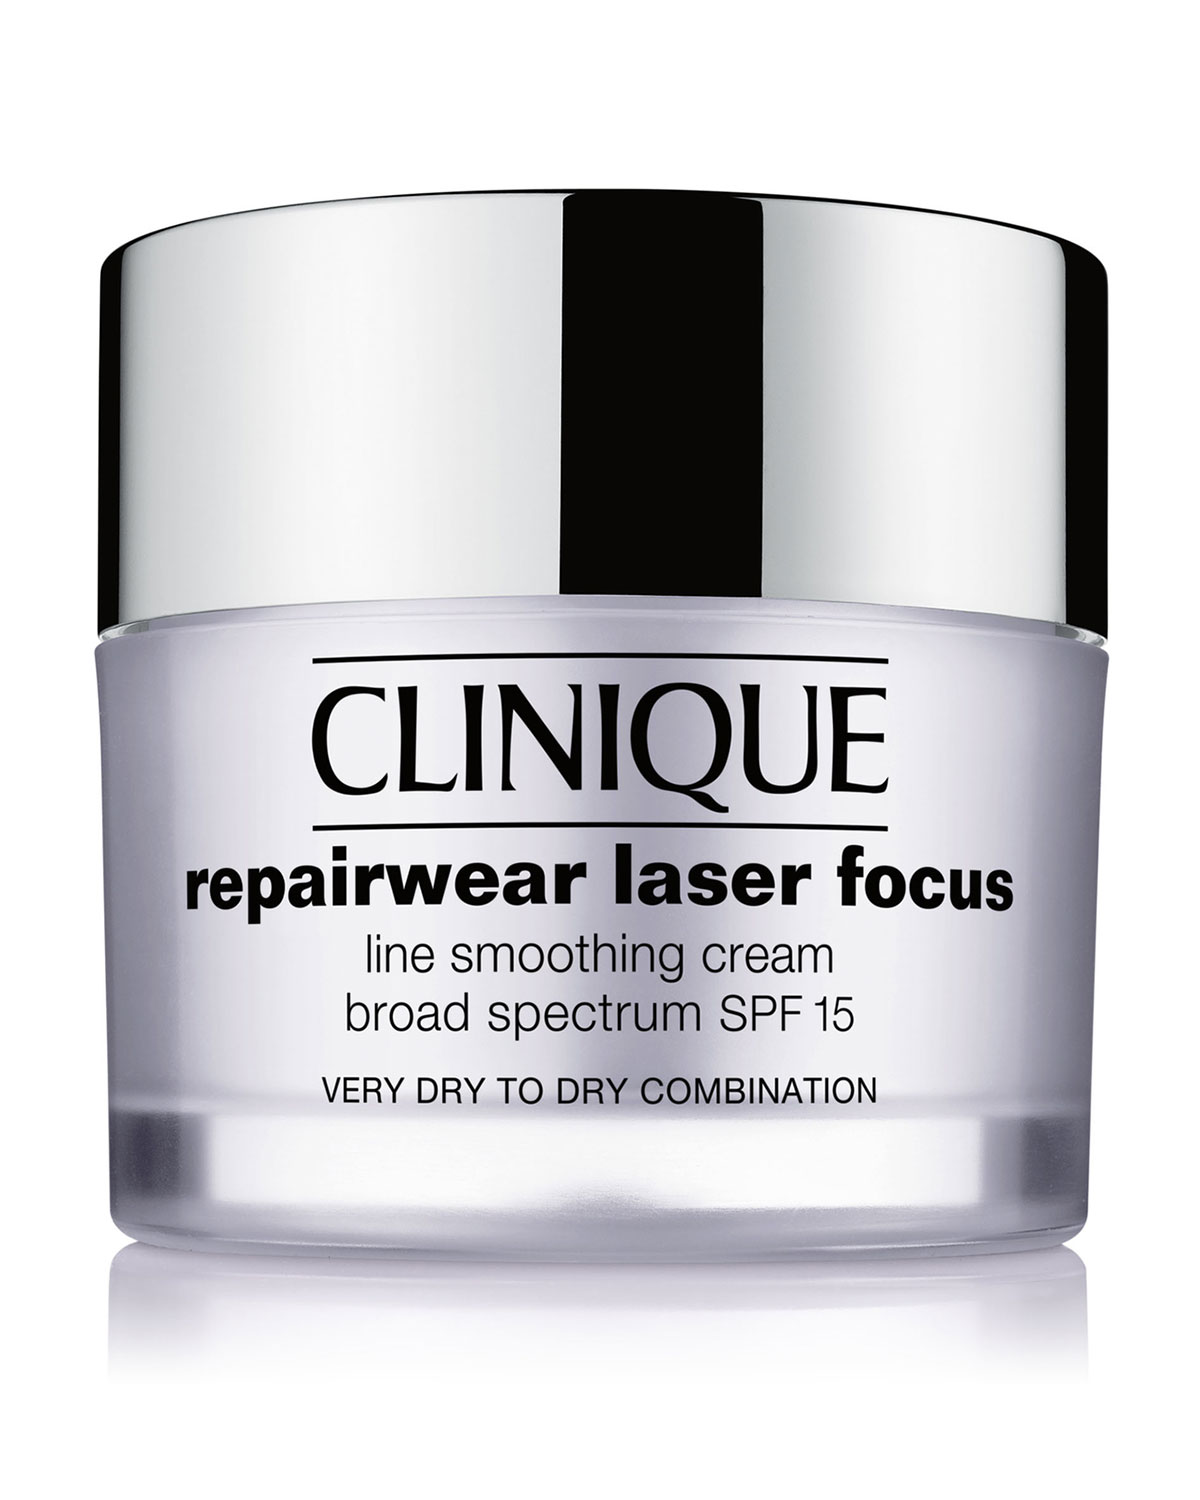 Repairwear Laser Focus Line Smoothing Cream Broad Spectrum Spf 15 For Very Dry To Dry Combination Sk